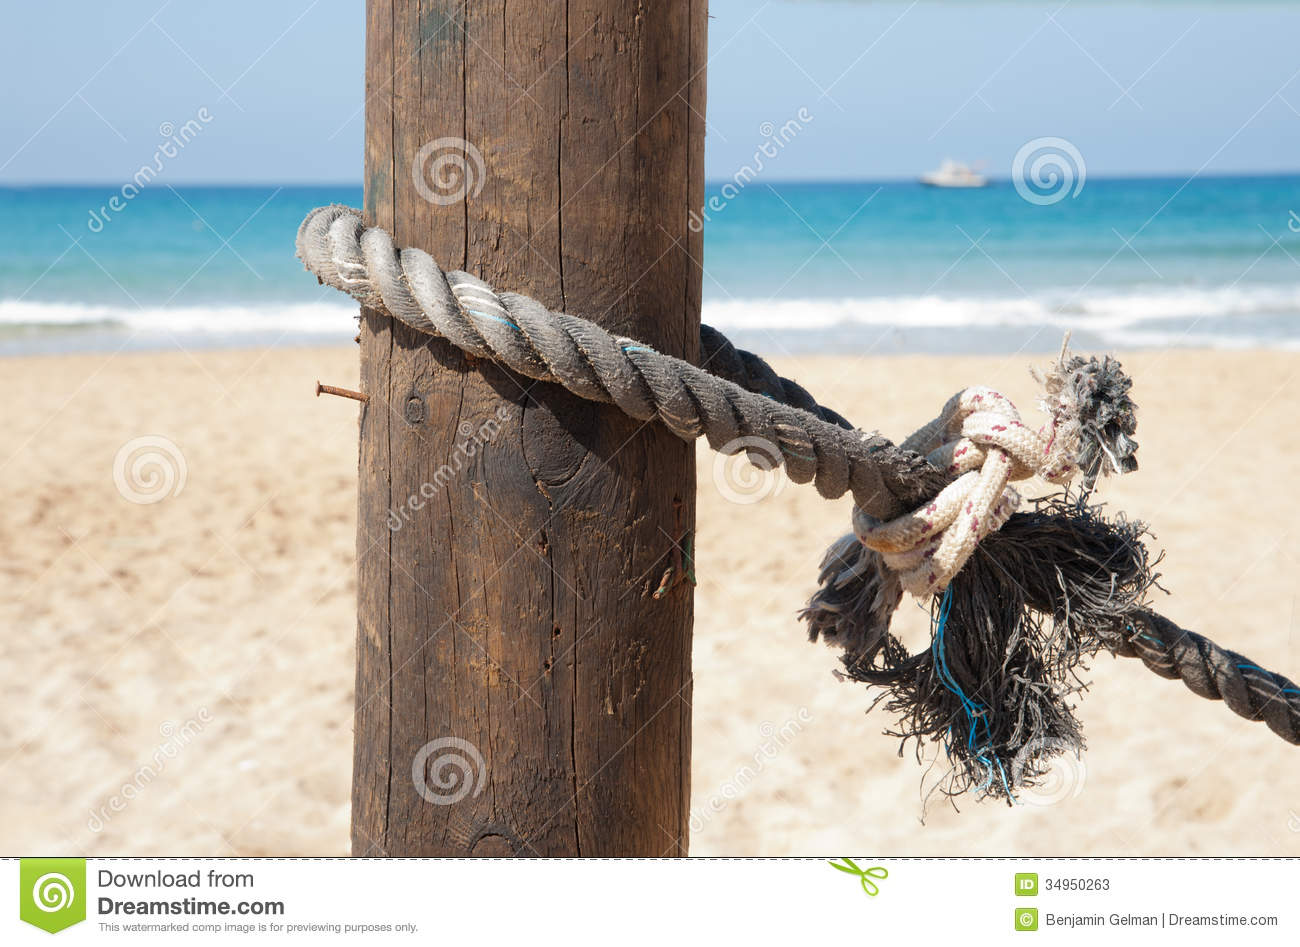 Bound to pole with rope advise you